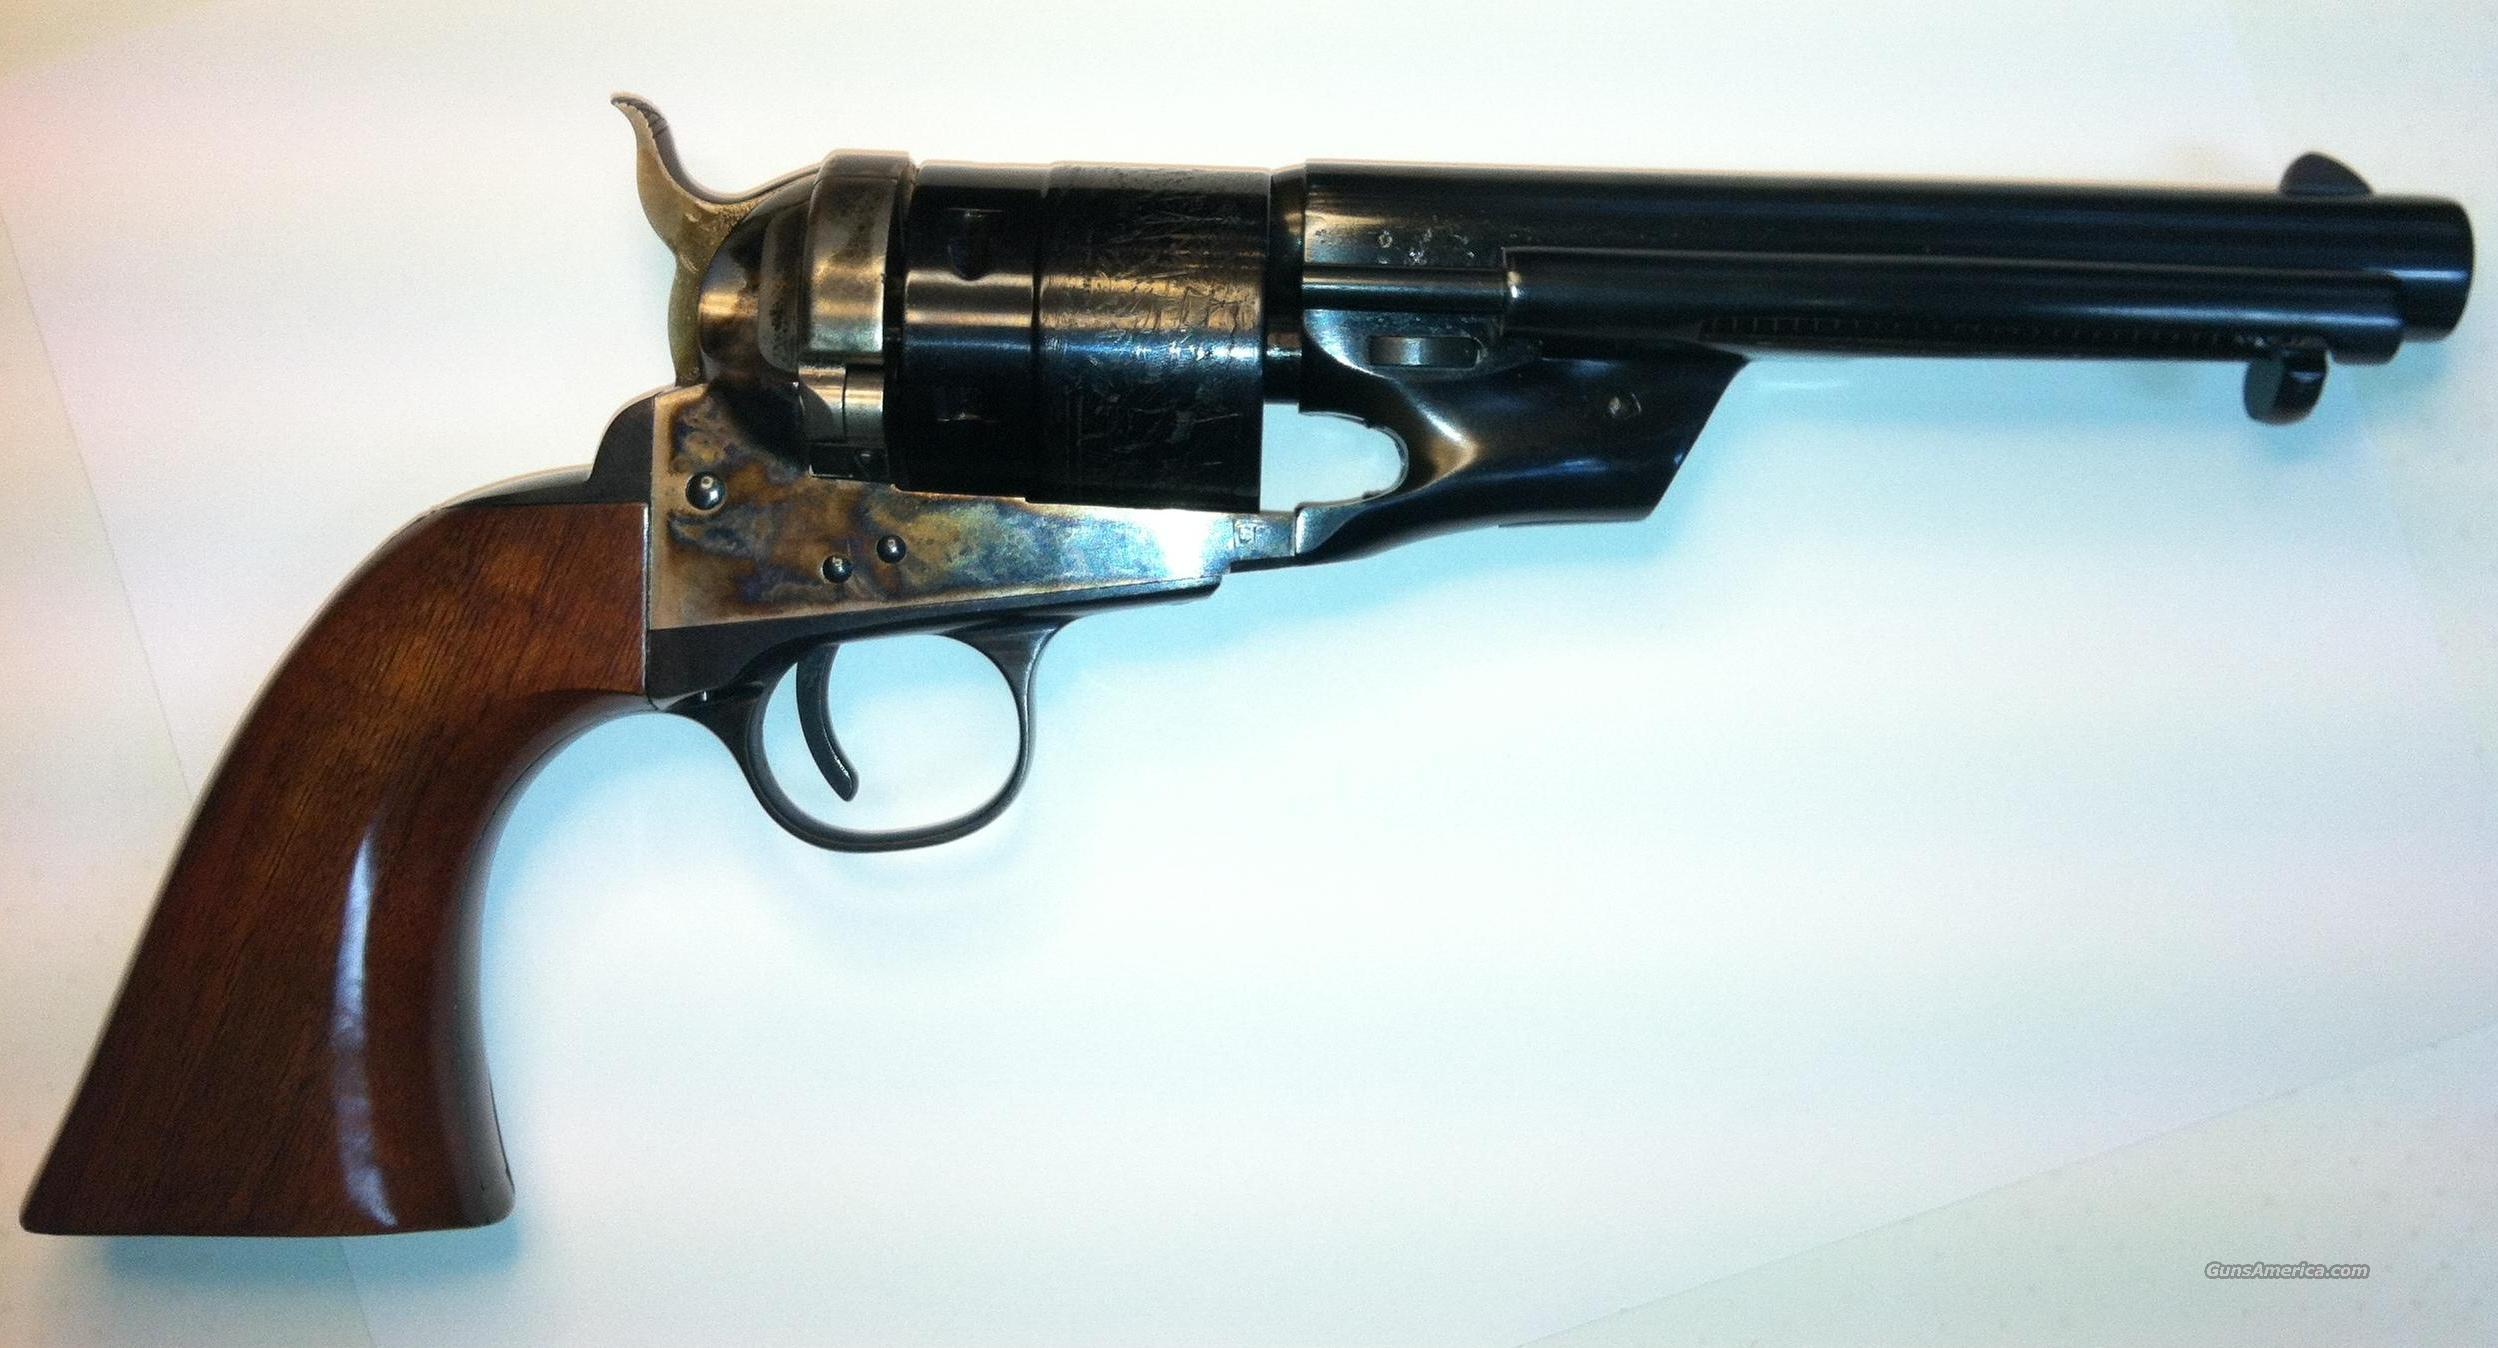 Cimarron 1860 Richards transition .44 spl. 5 1/2 in  Guns > Pistols > Cimmaron Pistols